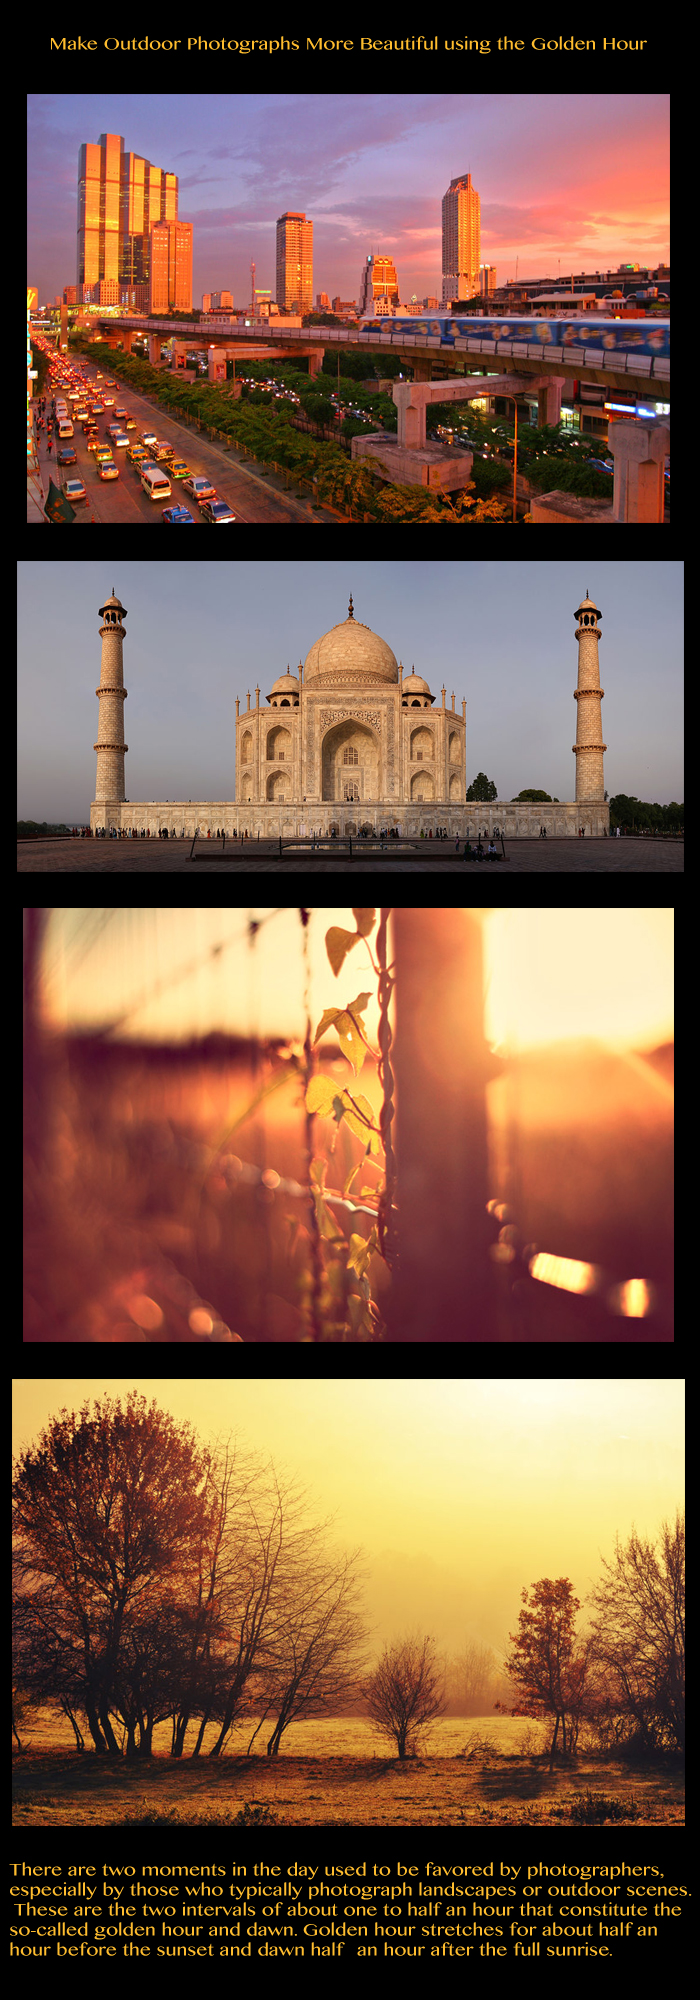 Make-Outdoor-Photographs-More-Beautiful-using-the-Golden-Hour